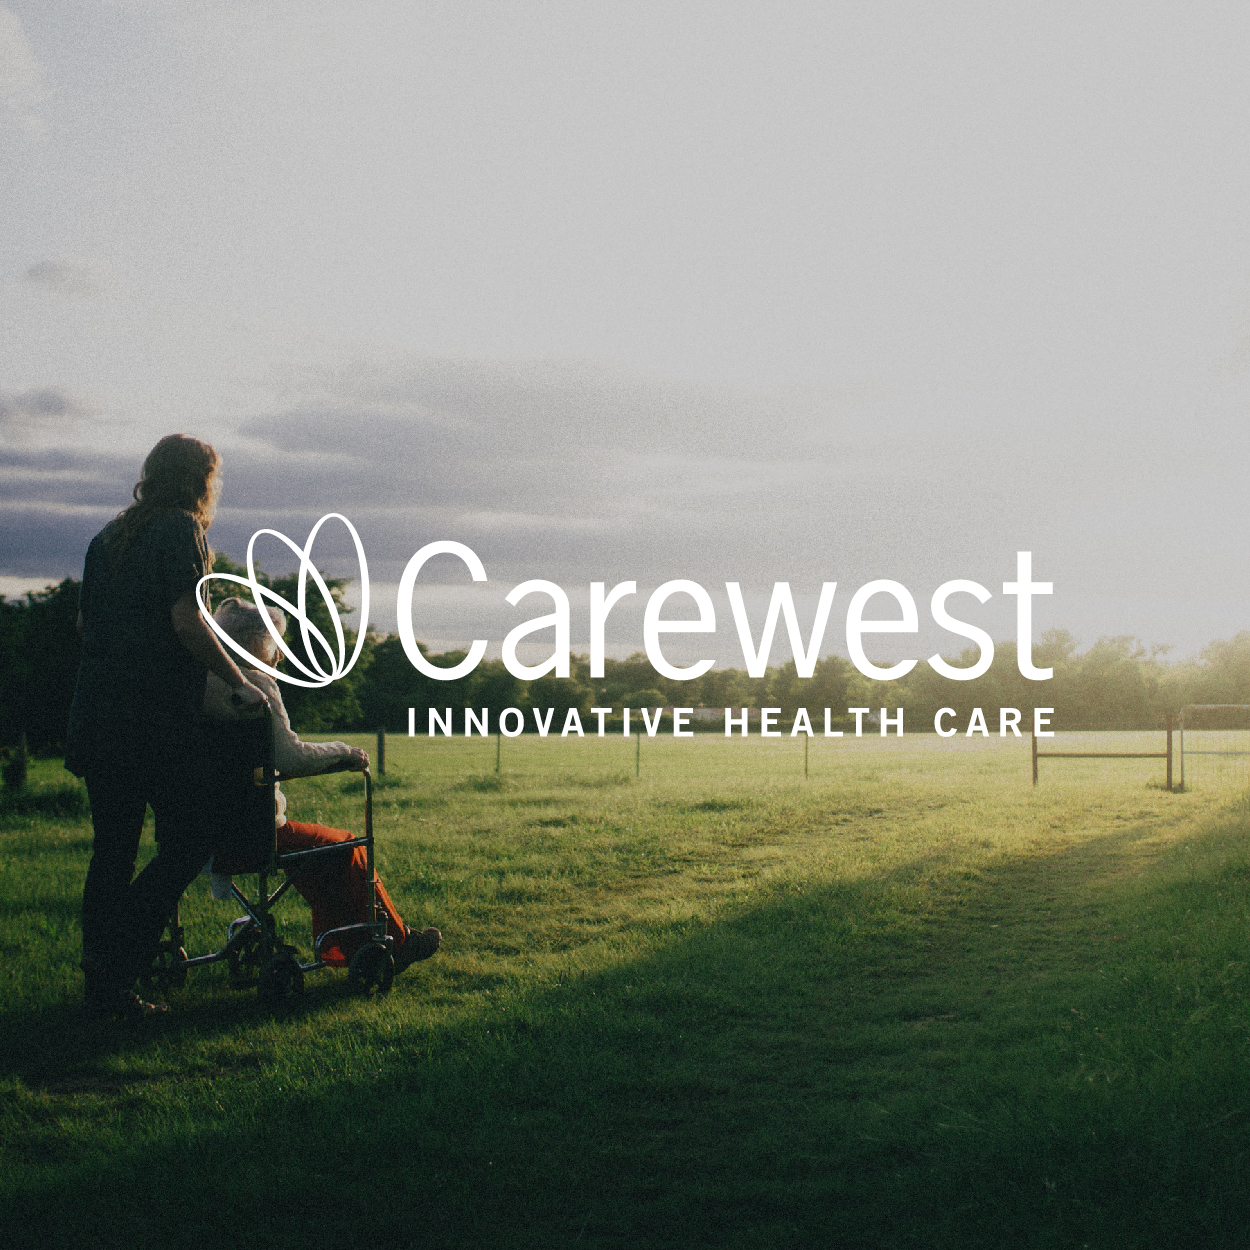 <p><strong>Carewest</strong></p>